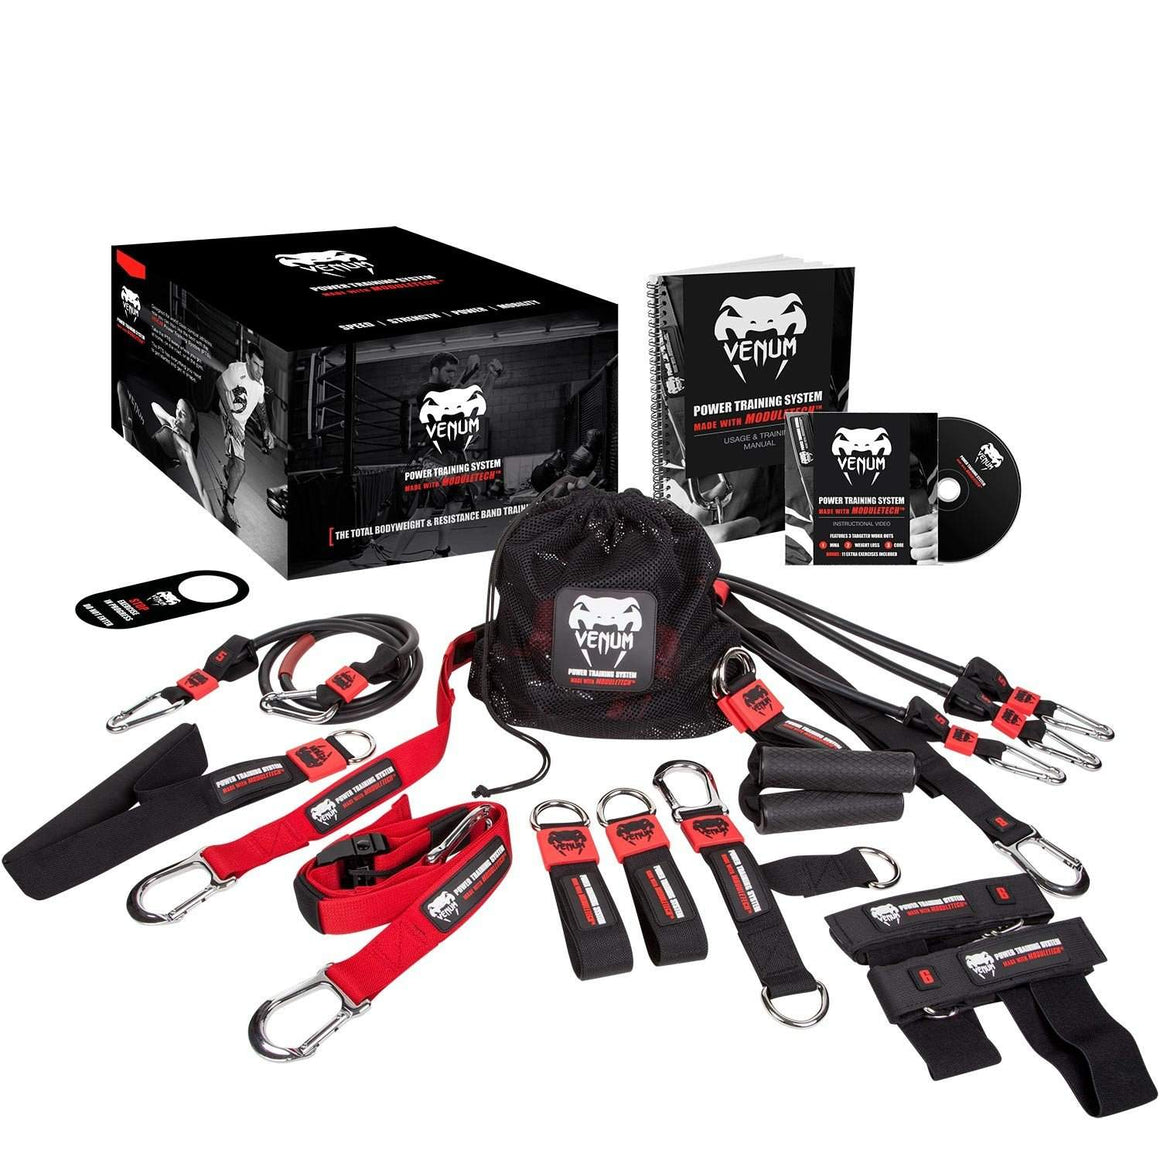 Venum Power Training System (Deluxe Box Set)